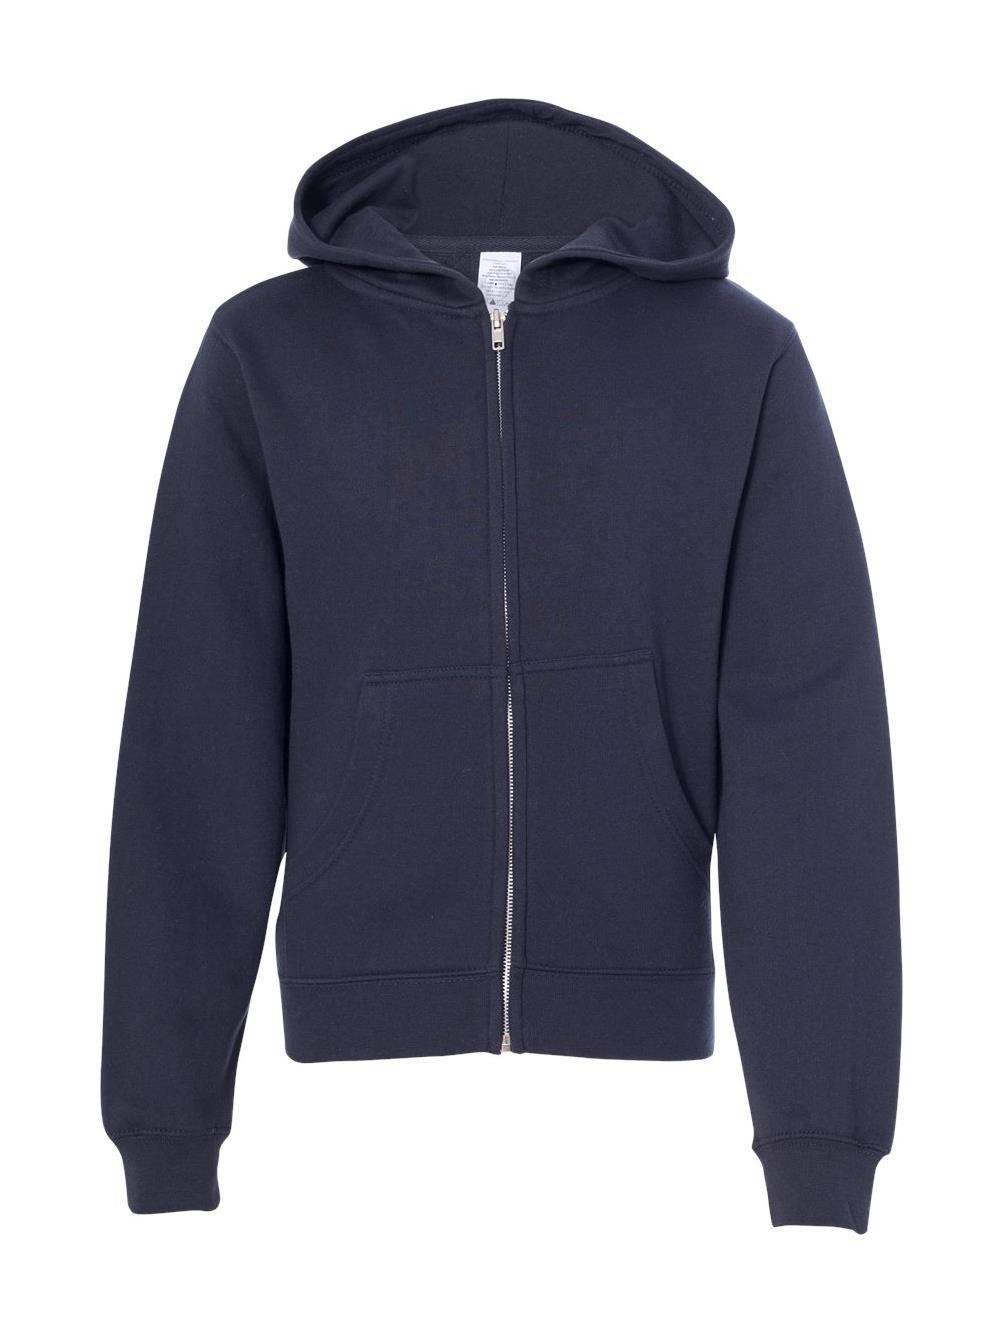 SS4001YZ Independent Trading Co. Fleece Youth Midweight Hooded Full-Zip Sweatshirt